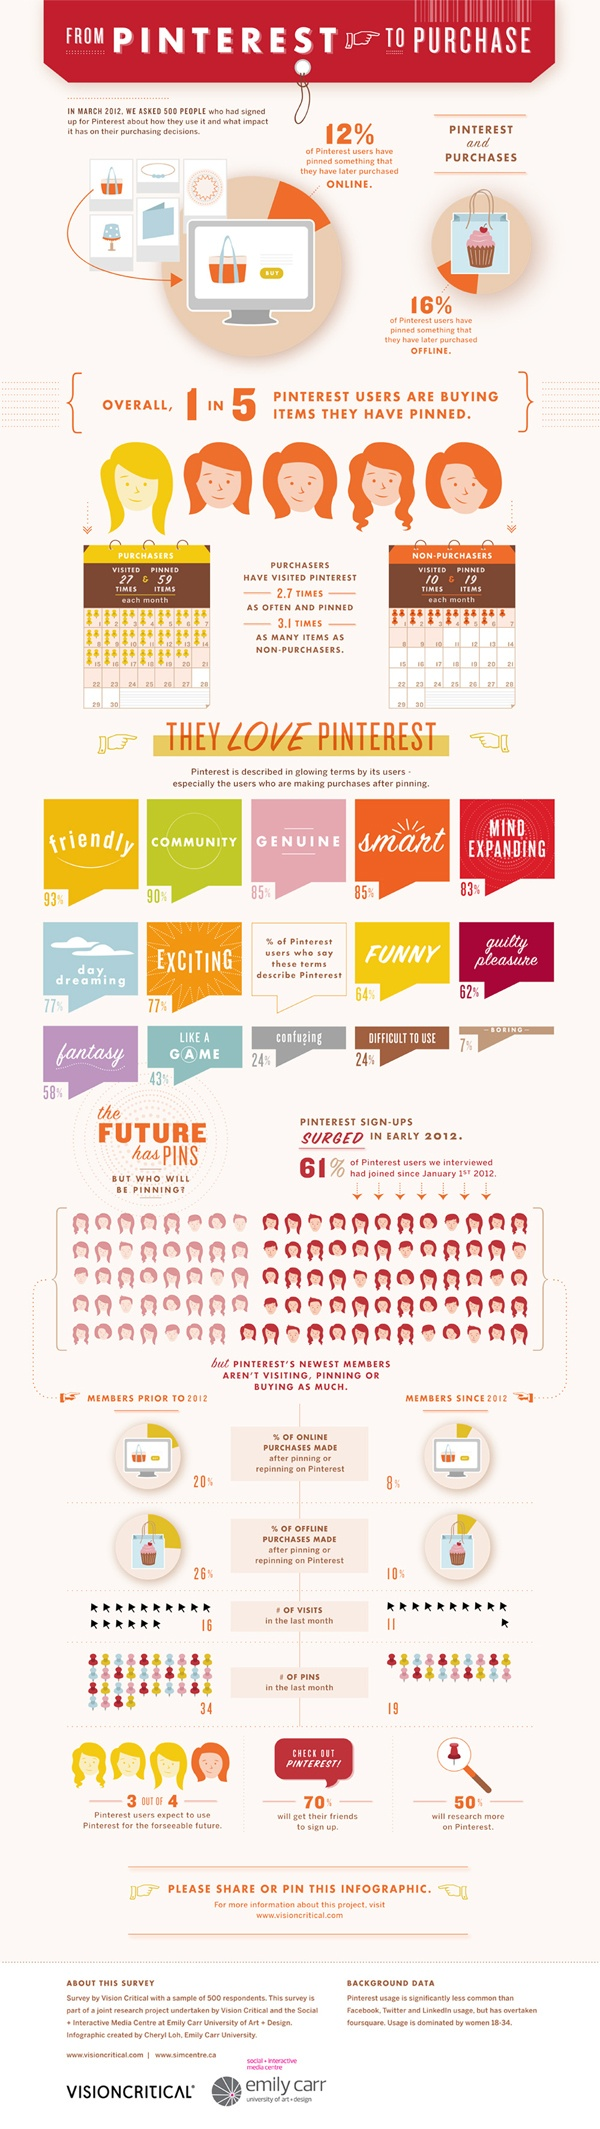 From Pinterest to Purchase [Infographic]